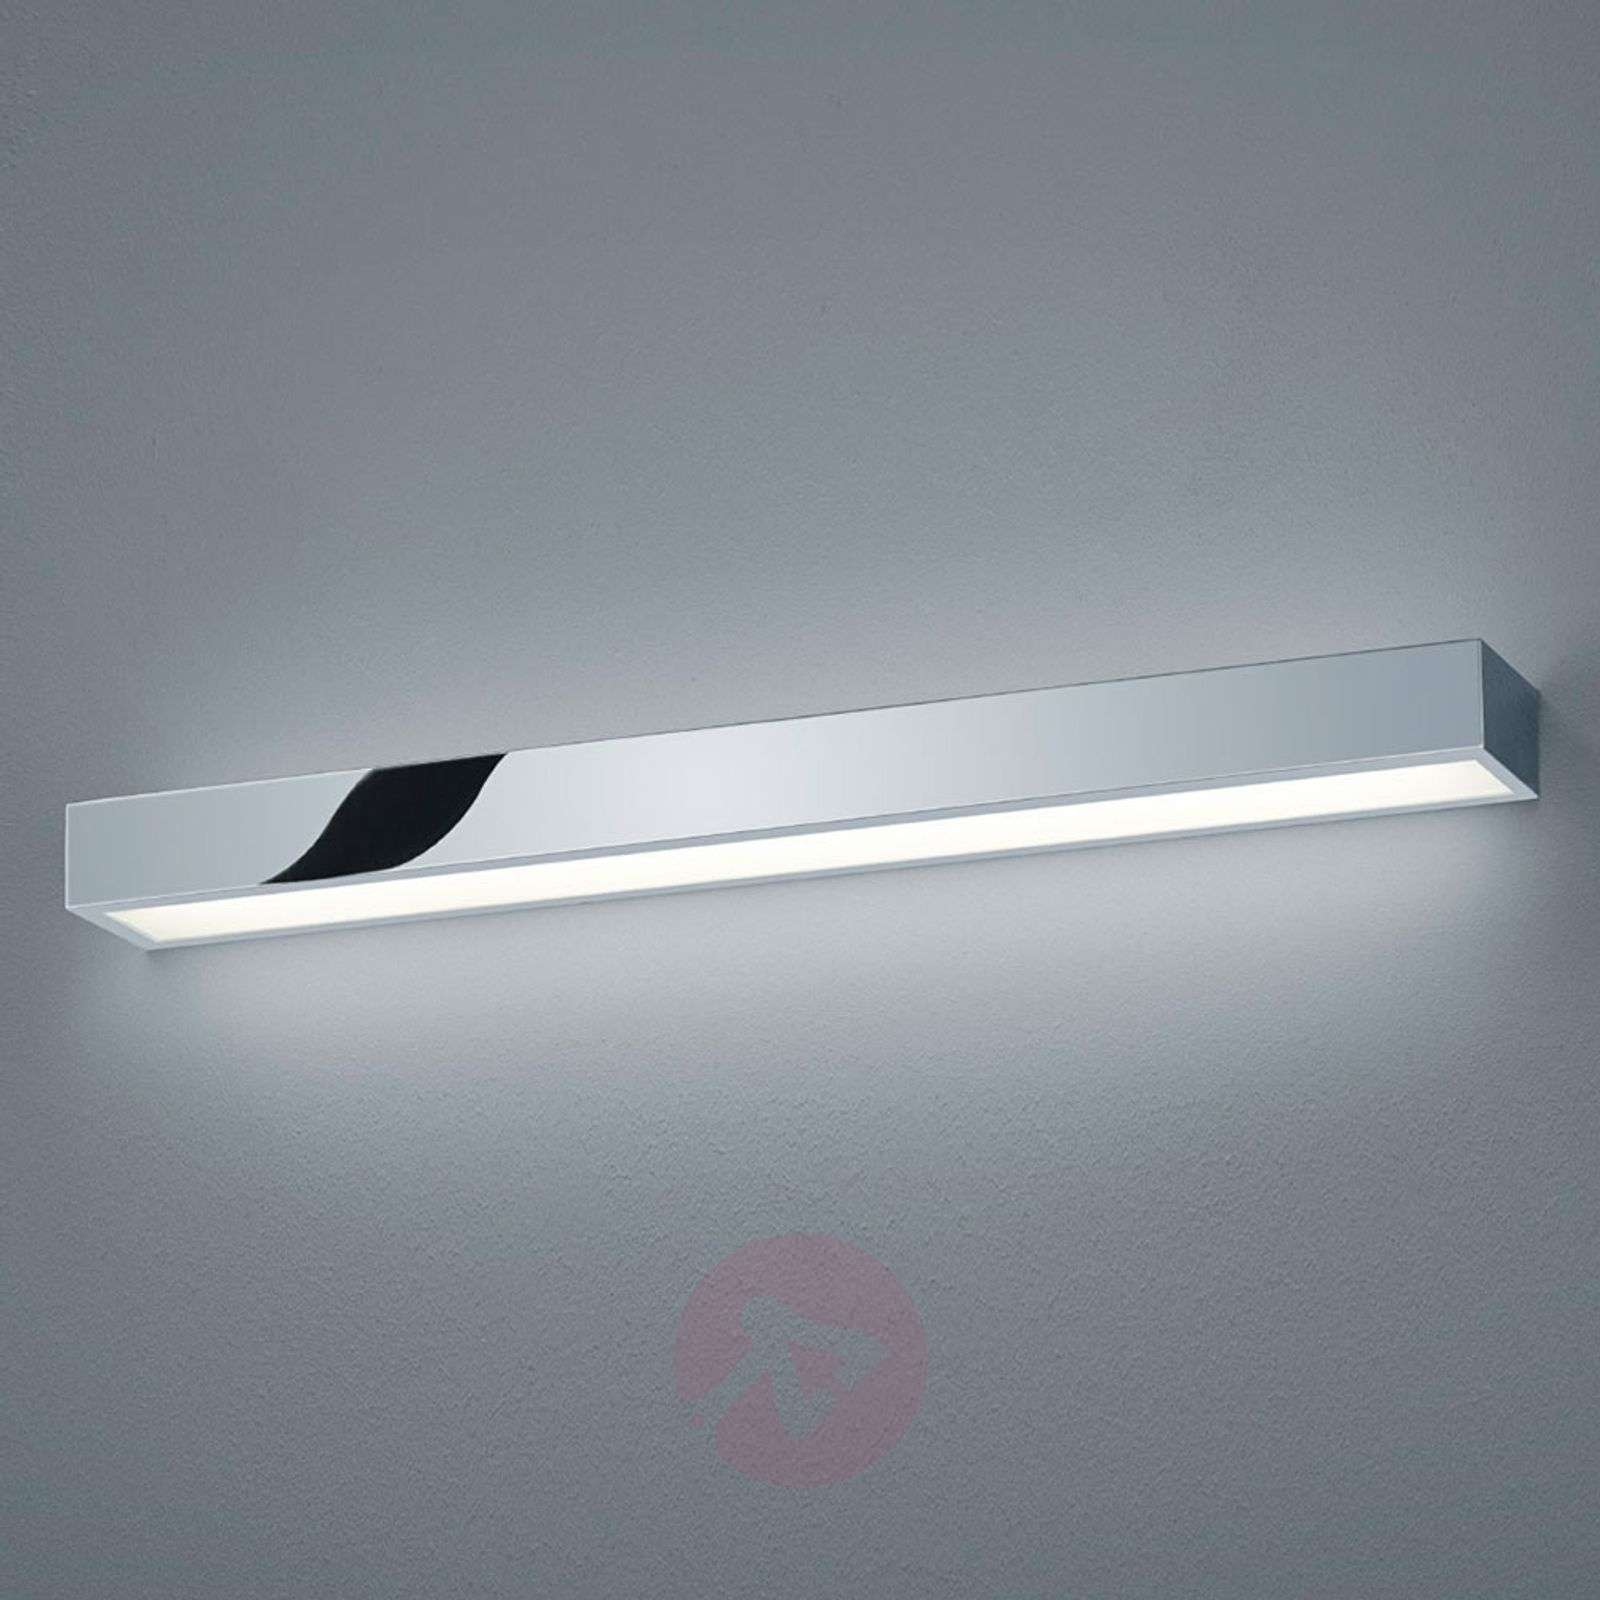 Helestra Theia LED mirror light chrome-plated 60cm-4516461-01